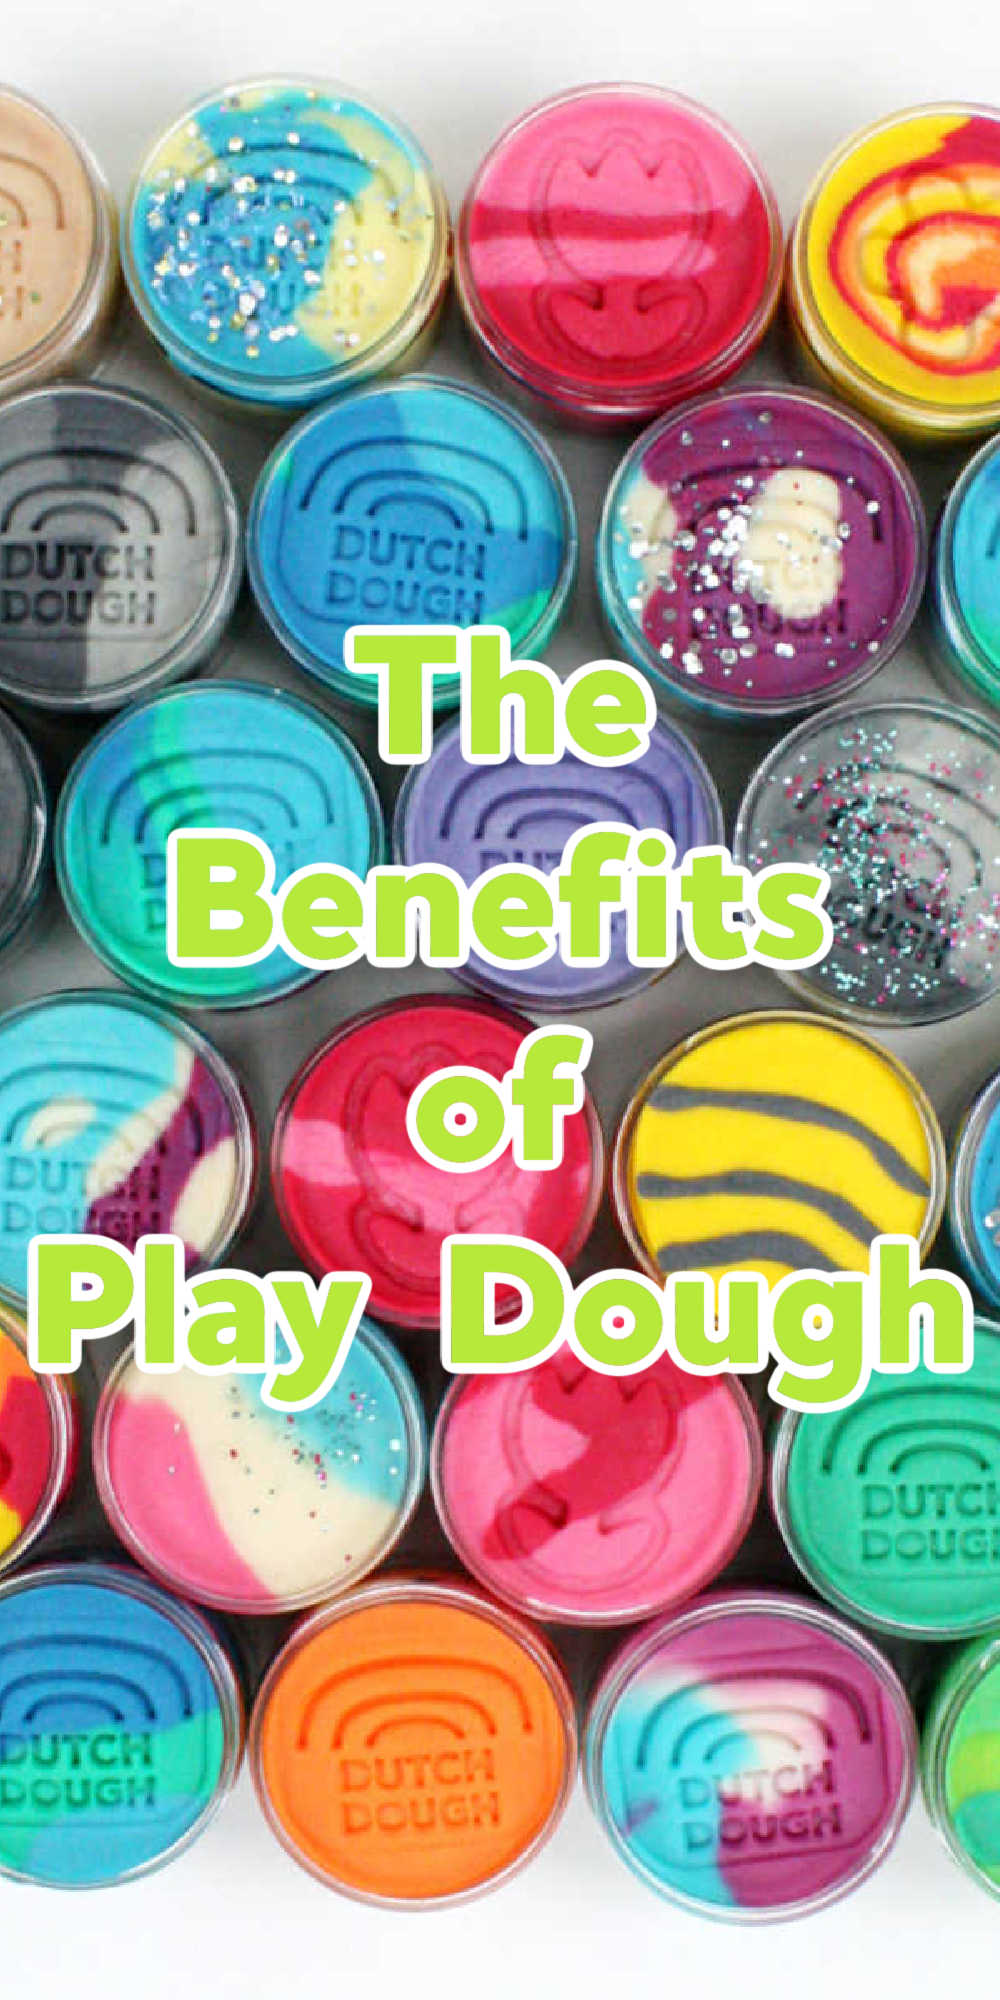 The Benefits of Play Dough